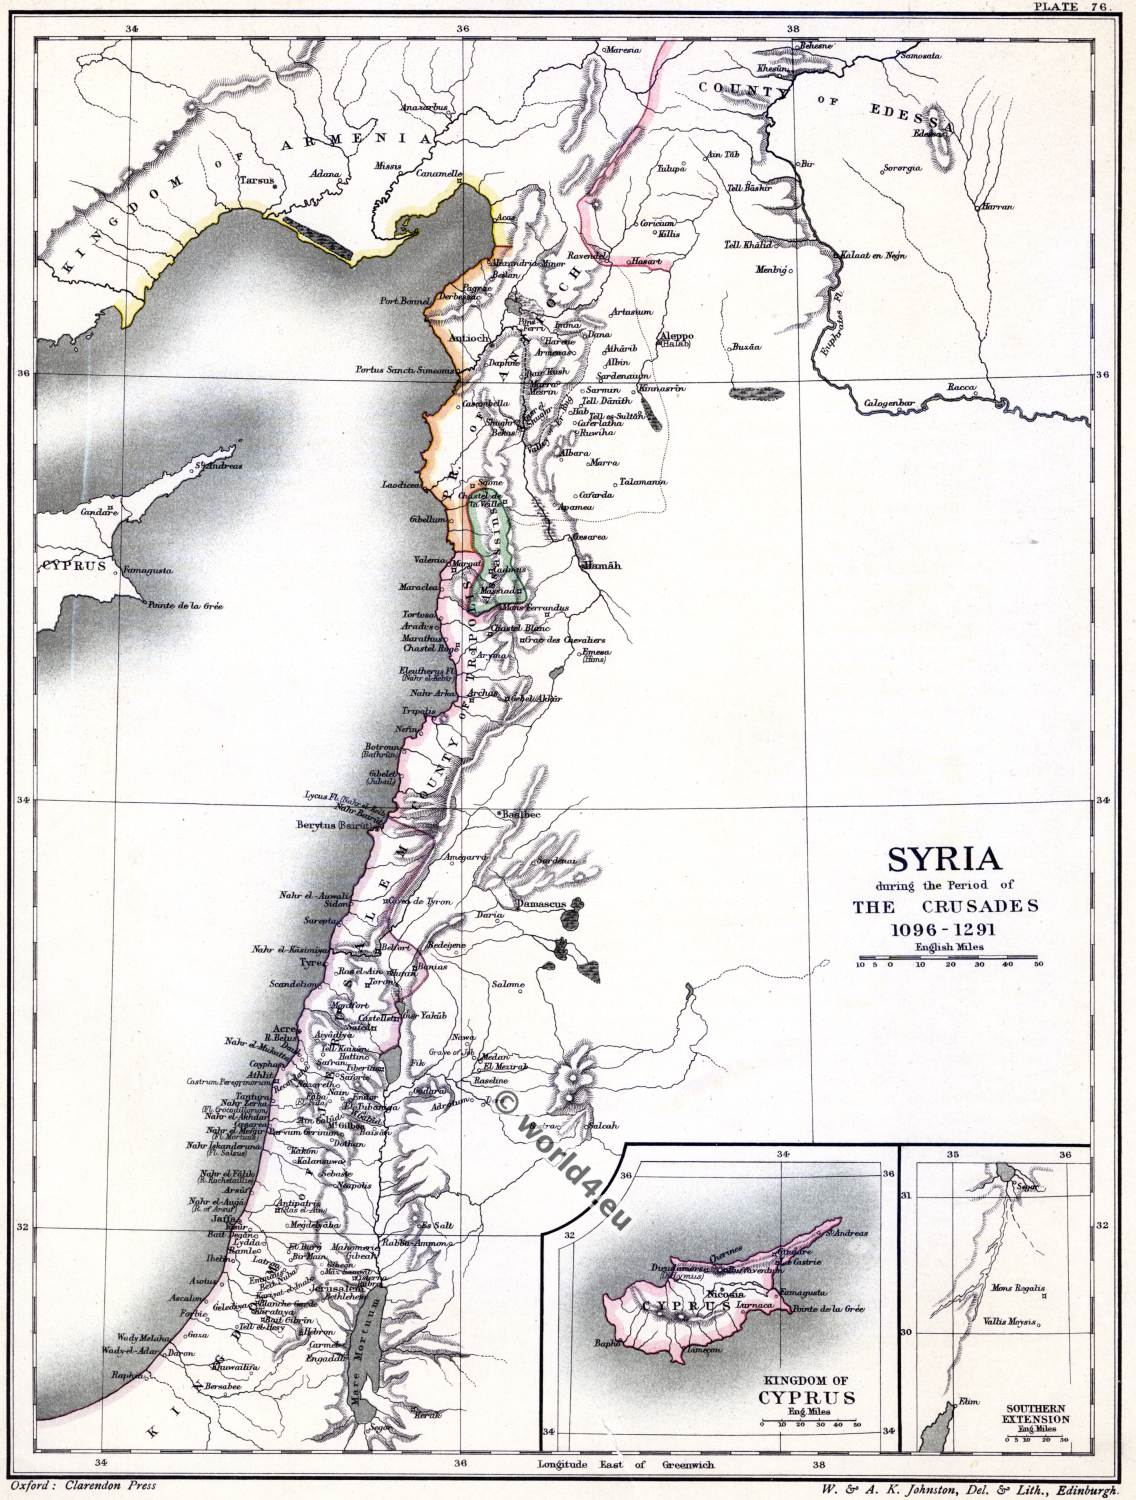 Antioch, crusades, Maps, places, Syria, Holy Land, middle ages, principality,